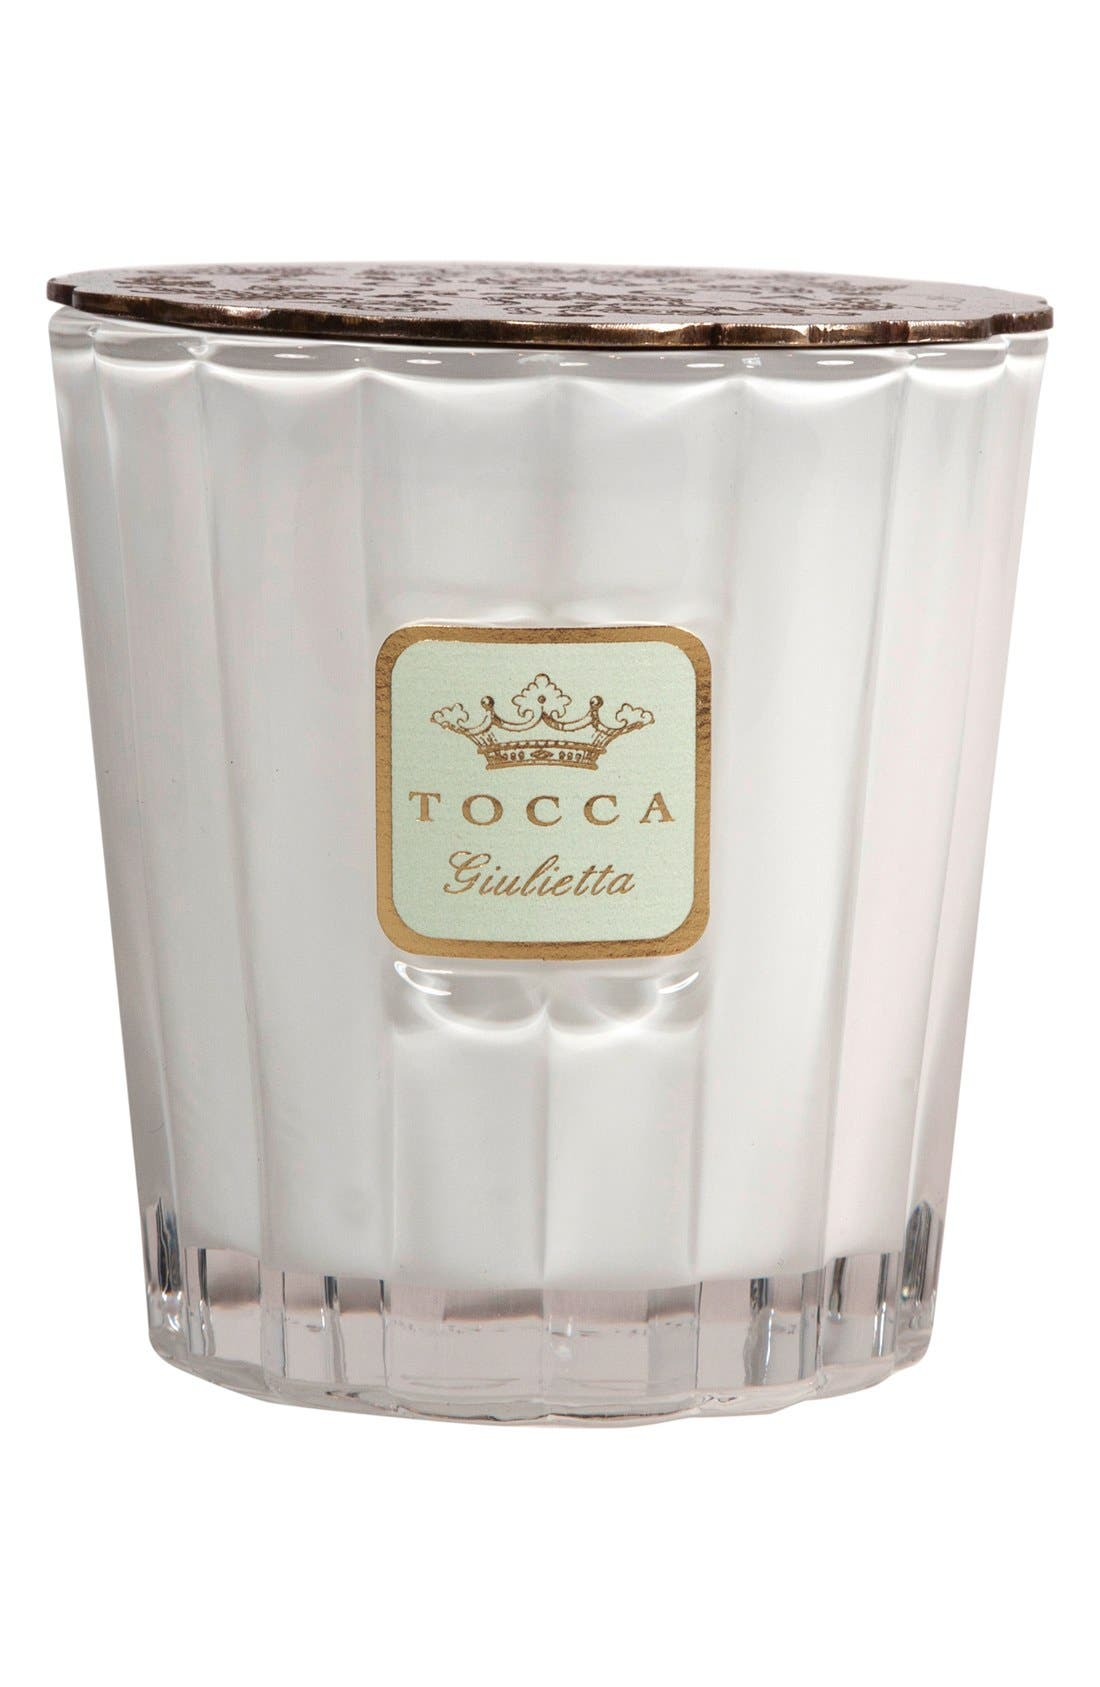 Alternate Image 1 Selected - TOCCA Candela Luxe Candle